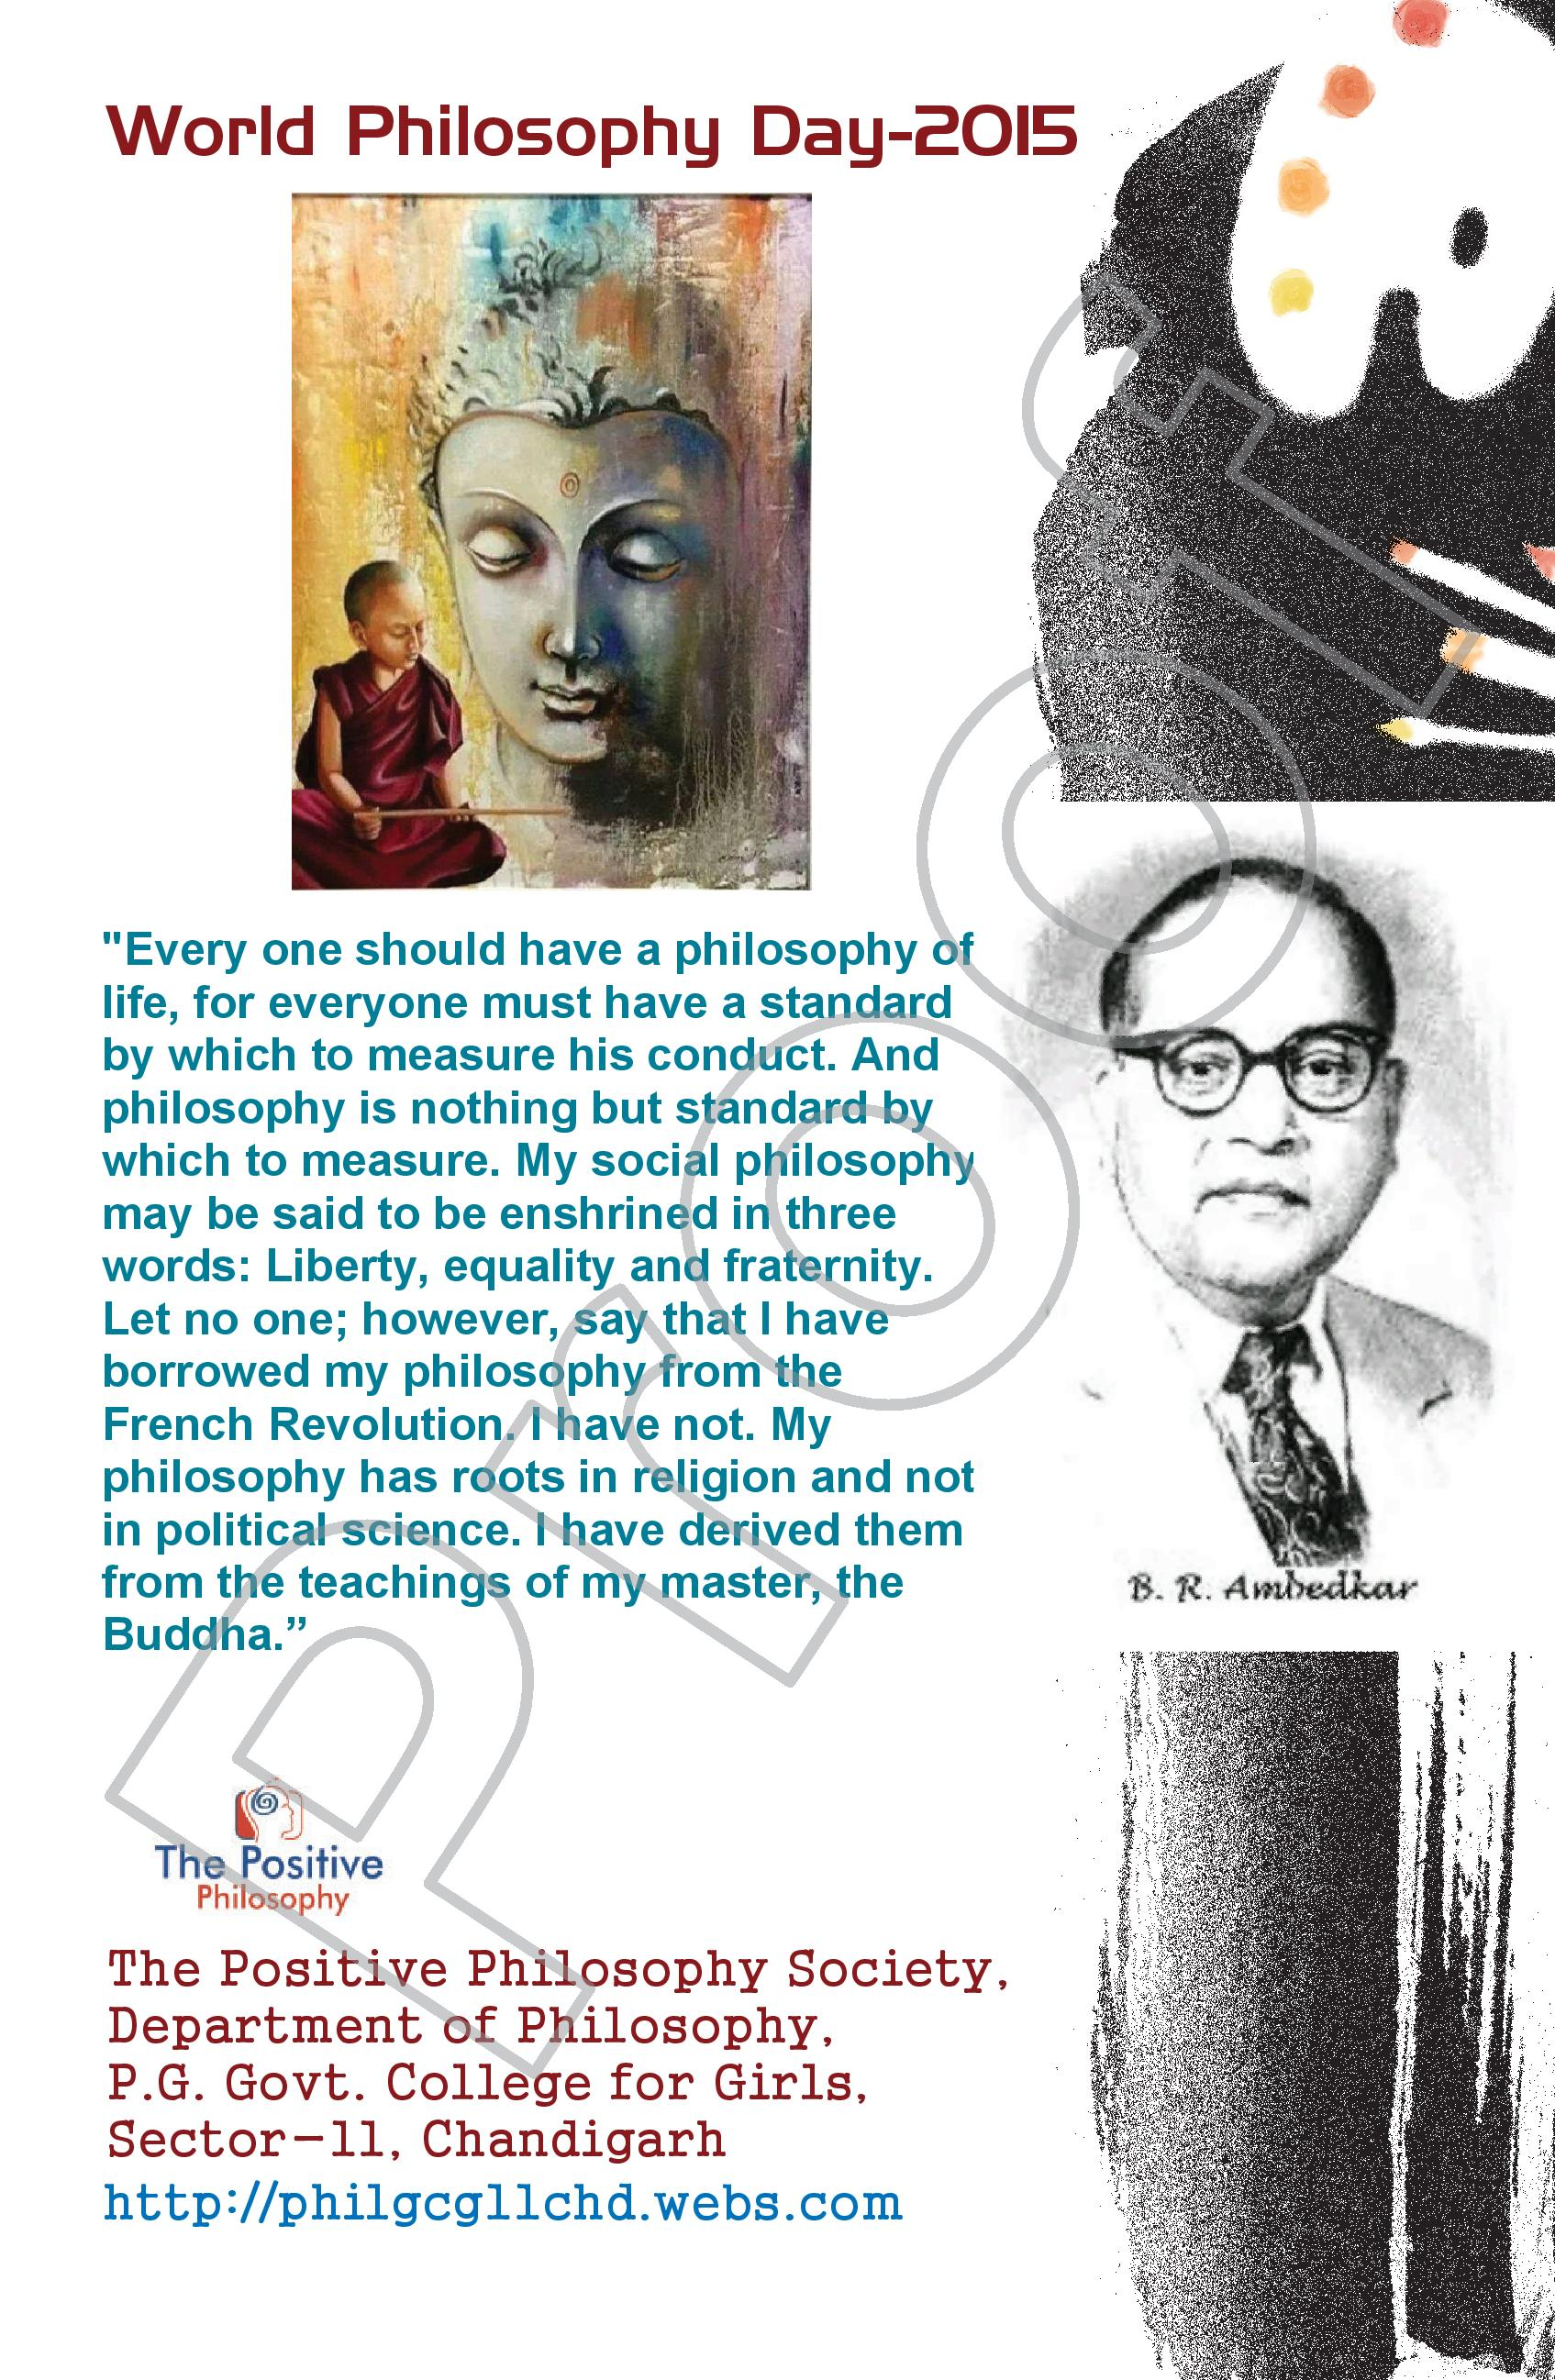 social philosophy the philosophy of liberation 2350 2369 2325 2381 2340 2367  world philosophy day 2015 poster to be released